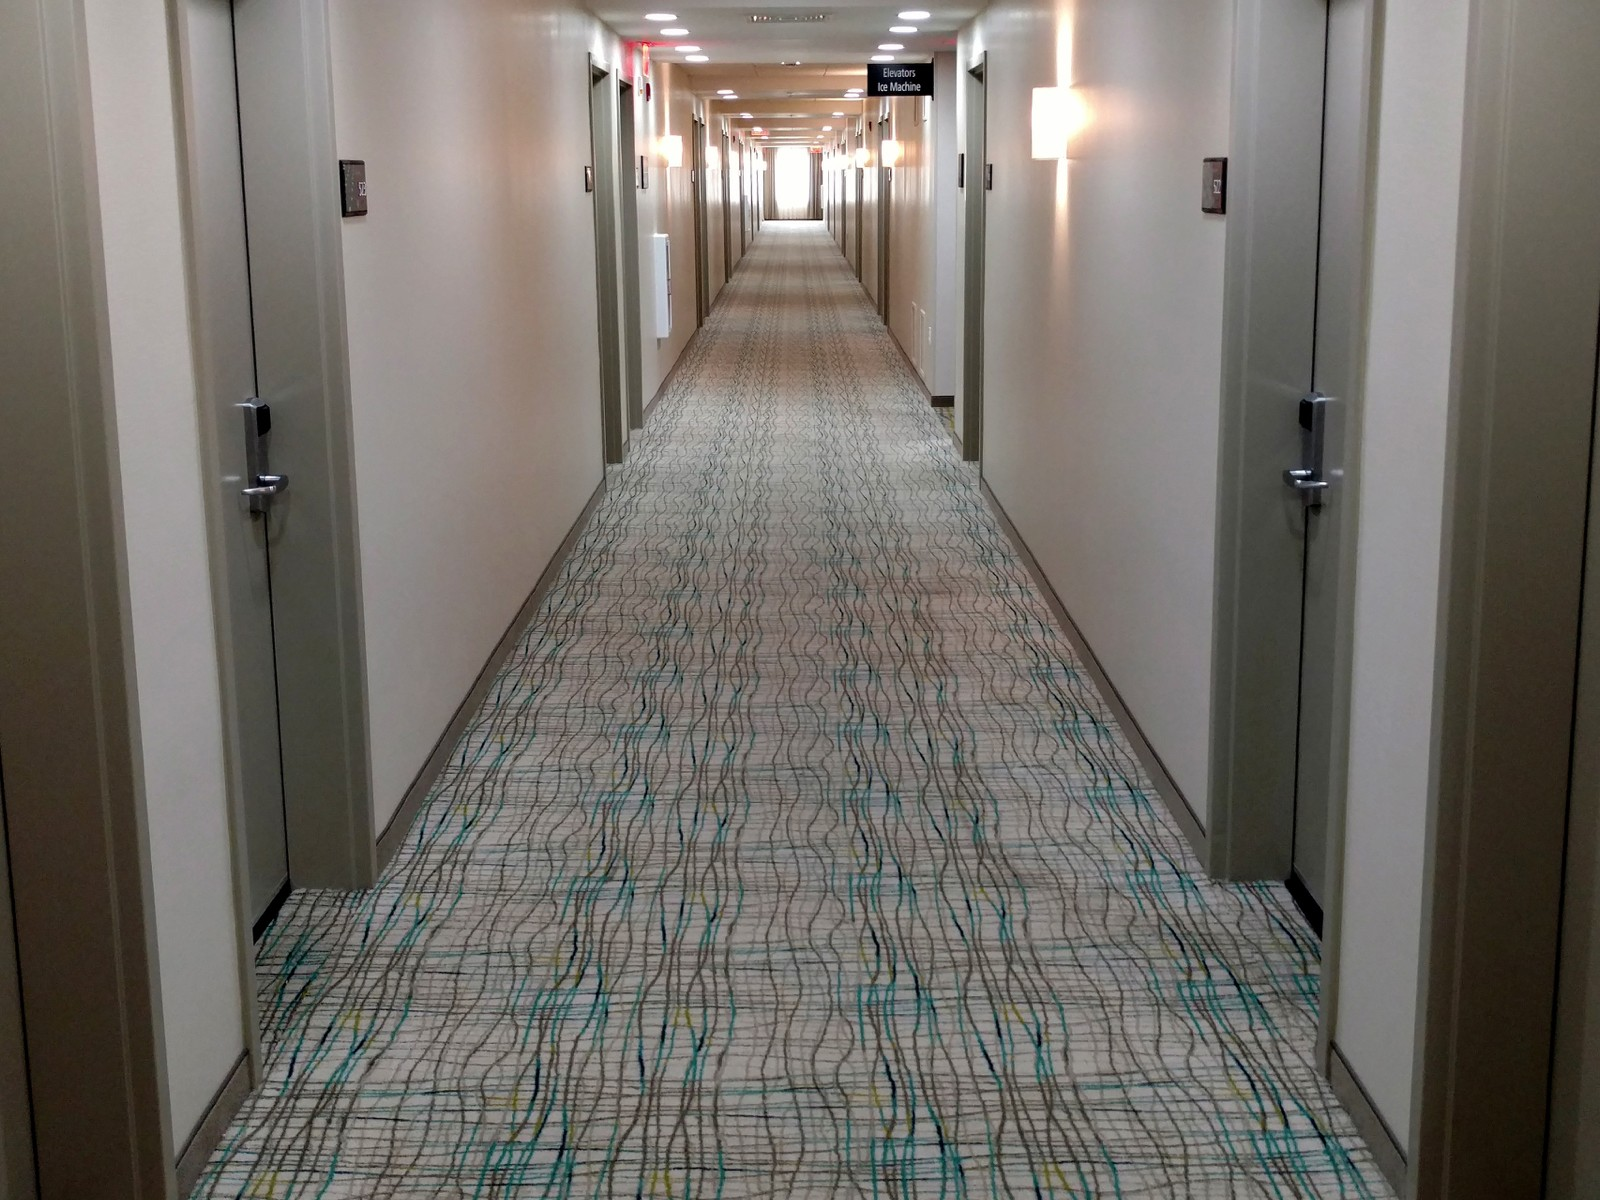 Hampton Inn & Suites | Flooring Installation System